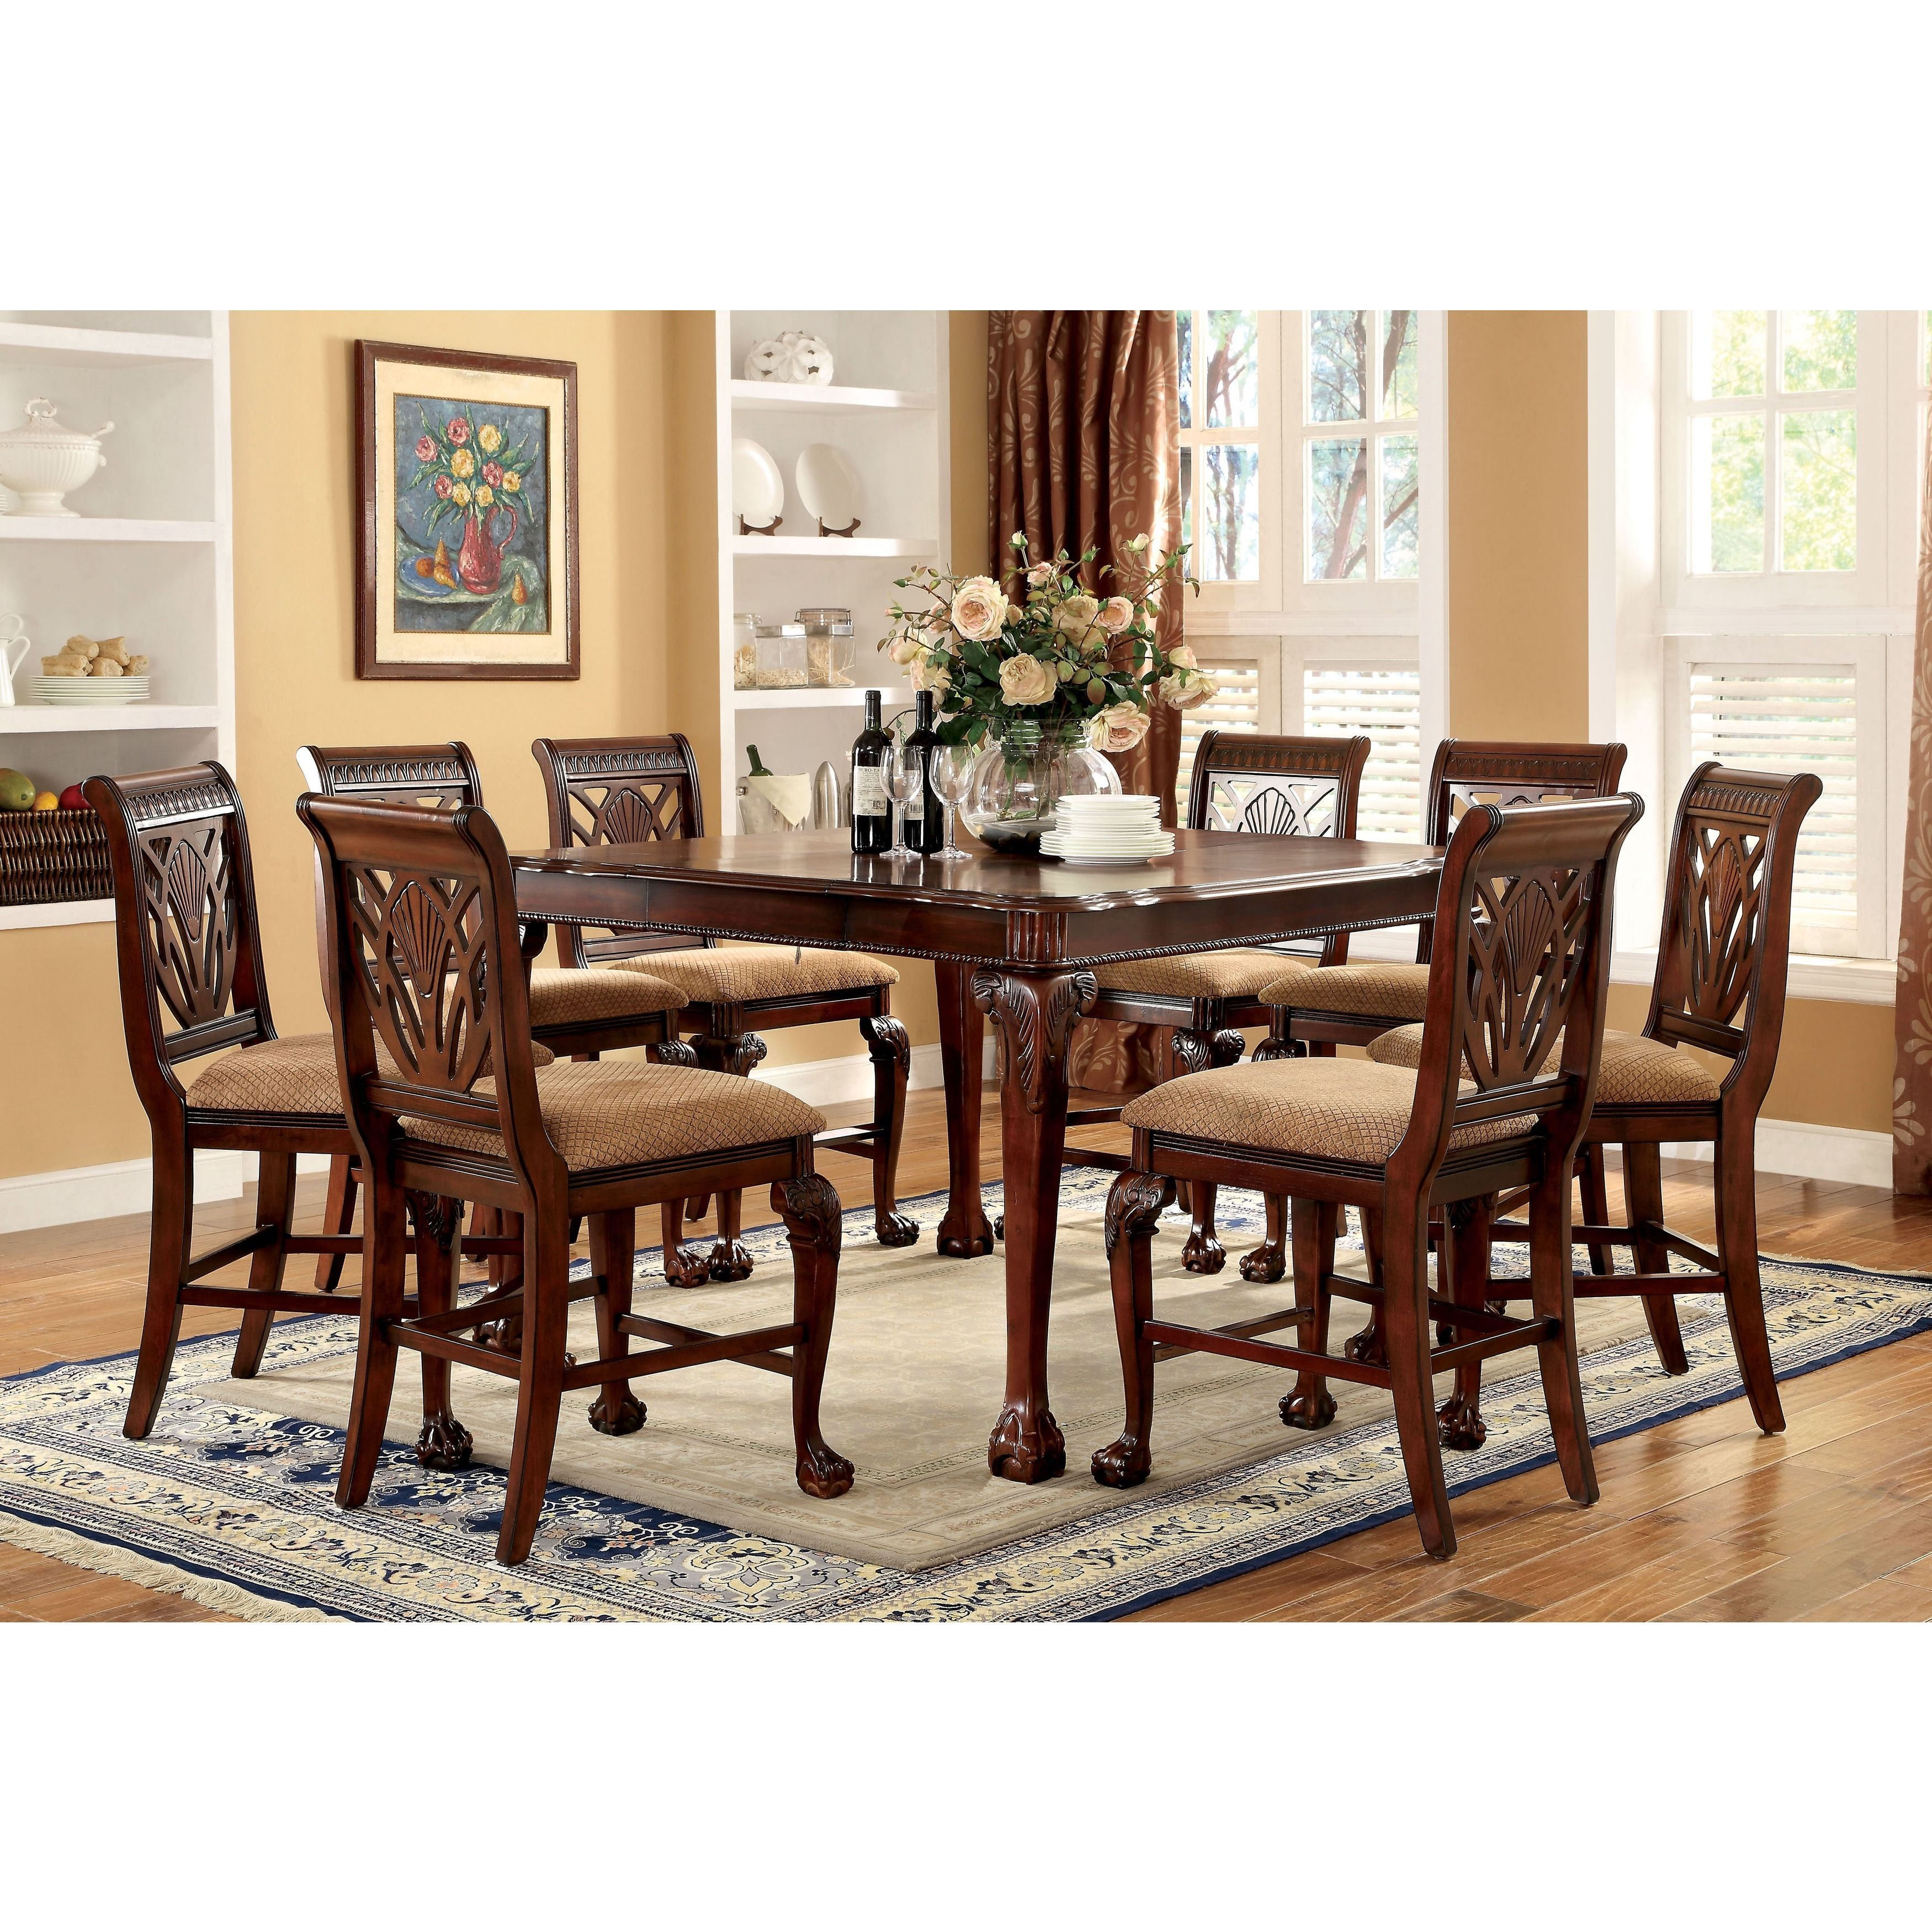 Attirant Furniture Of America Ranfort 9 Piece Cherry Counter Height Dining Set  (Cherry), Brown, Size 9 Piece Sets